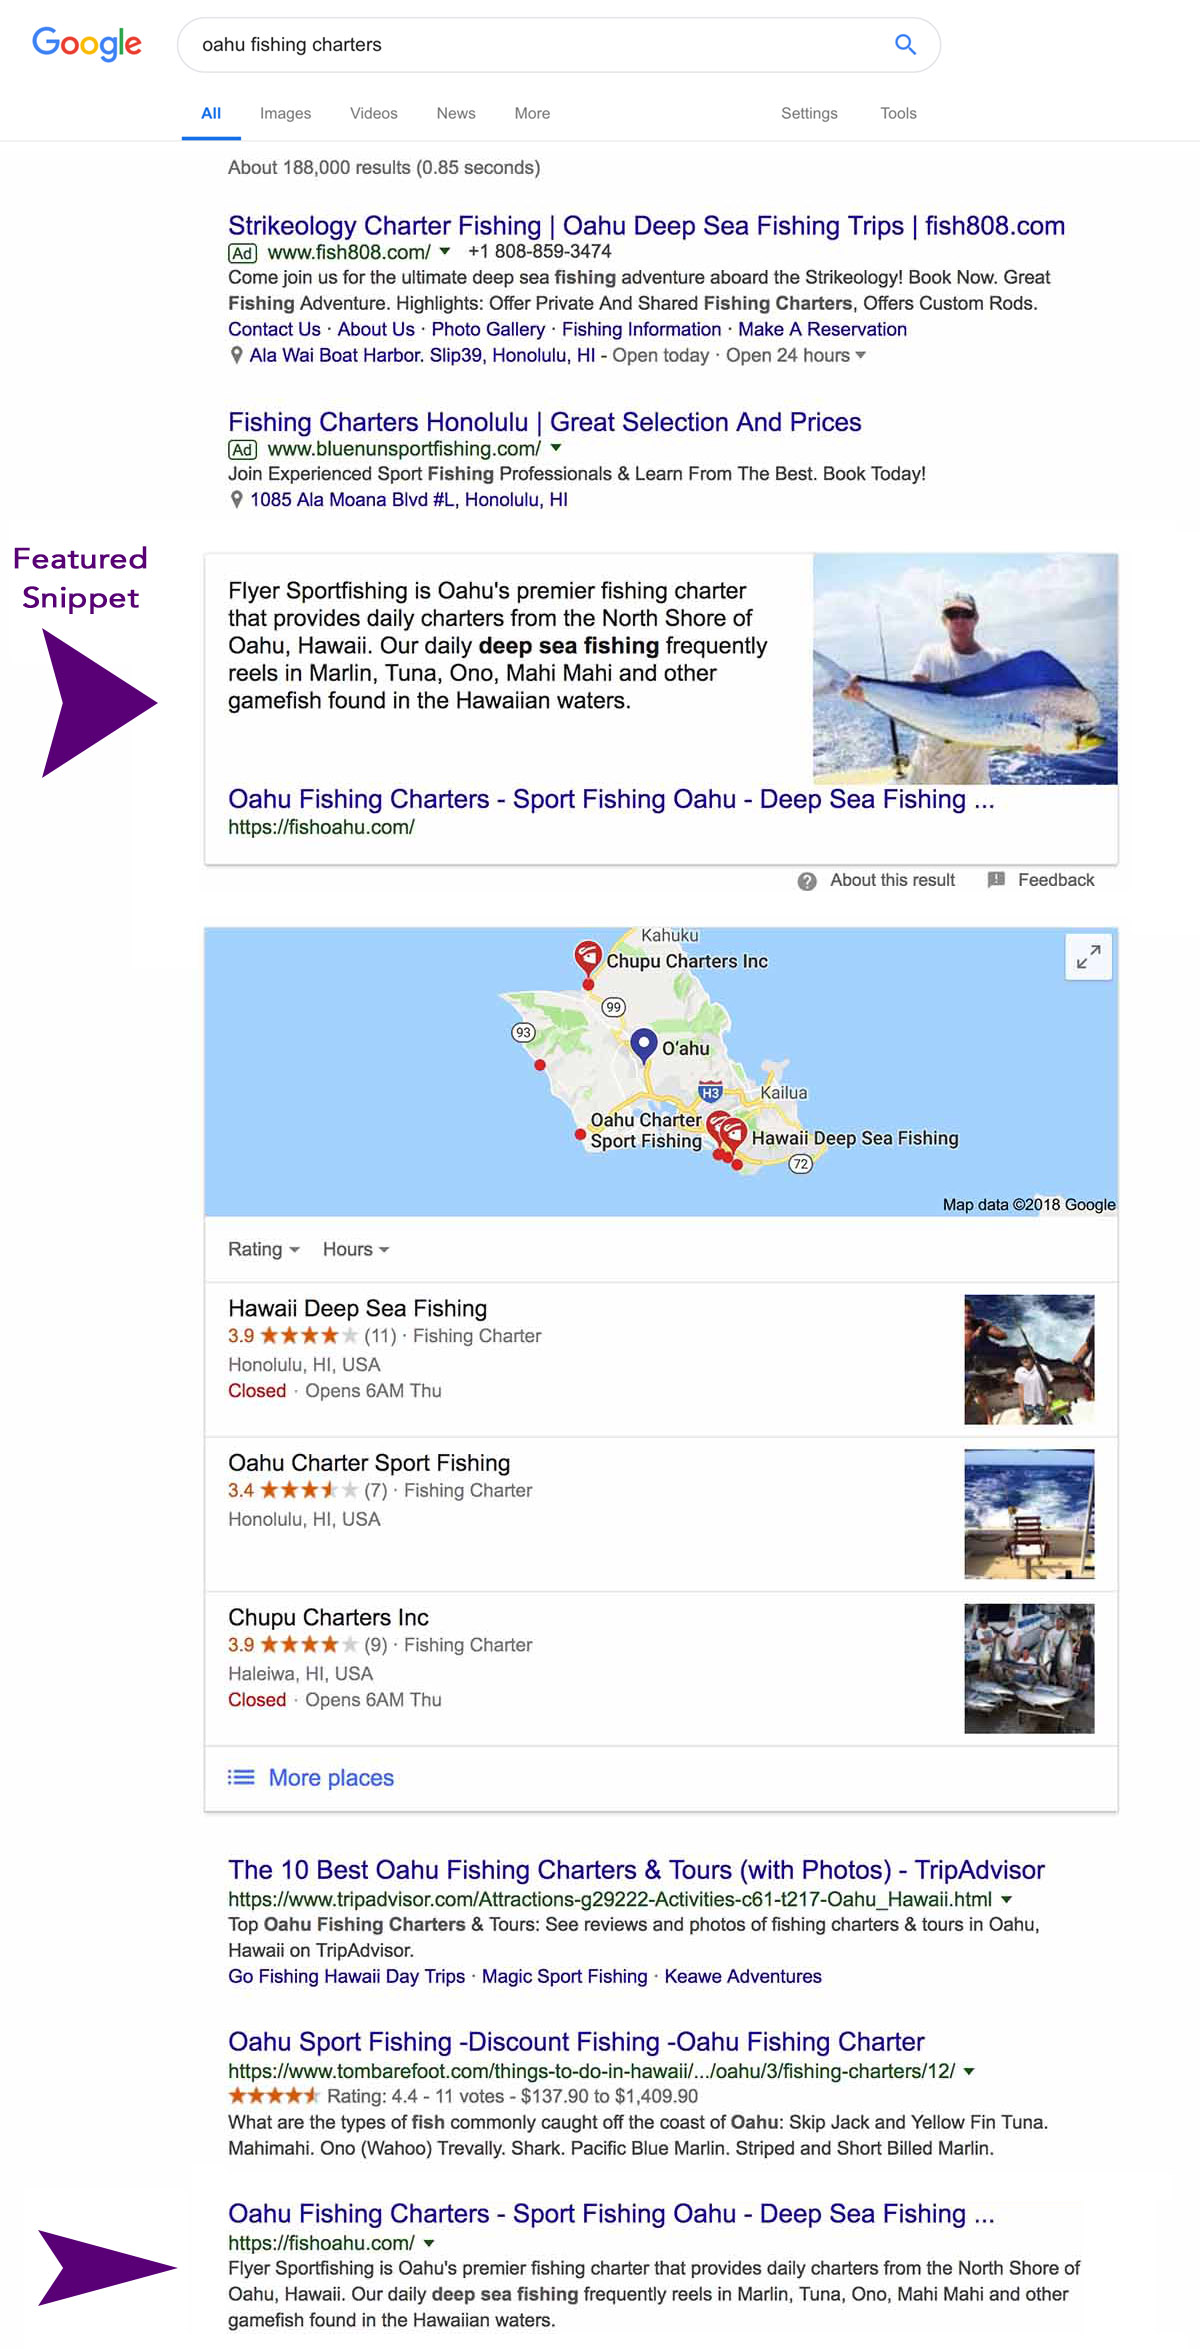 Fishing Charter featured snippet on Google's SERPS